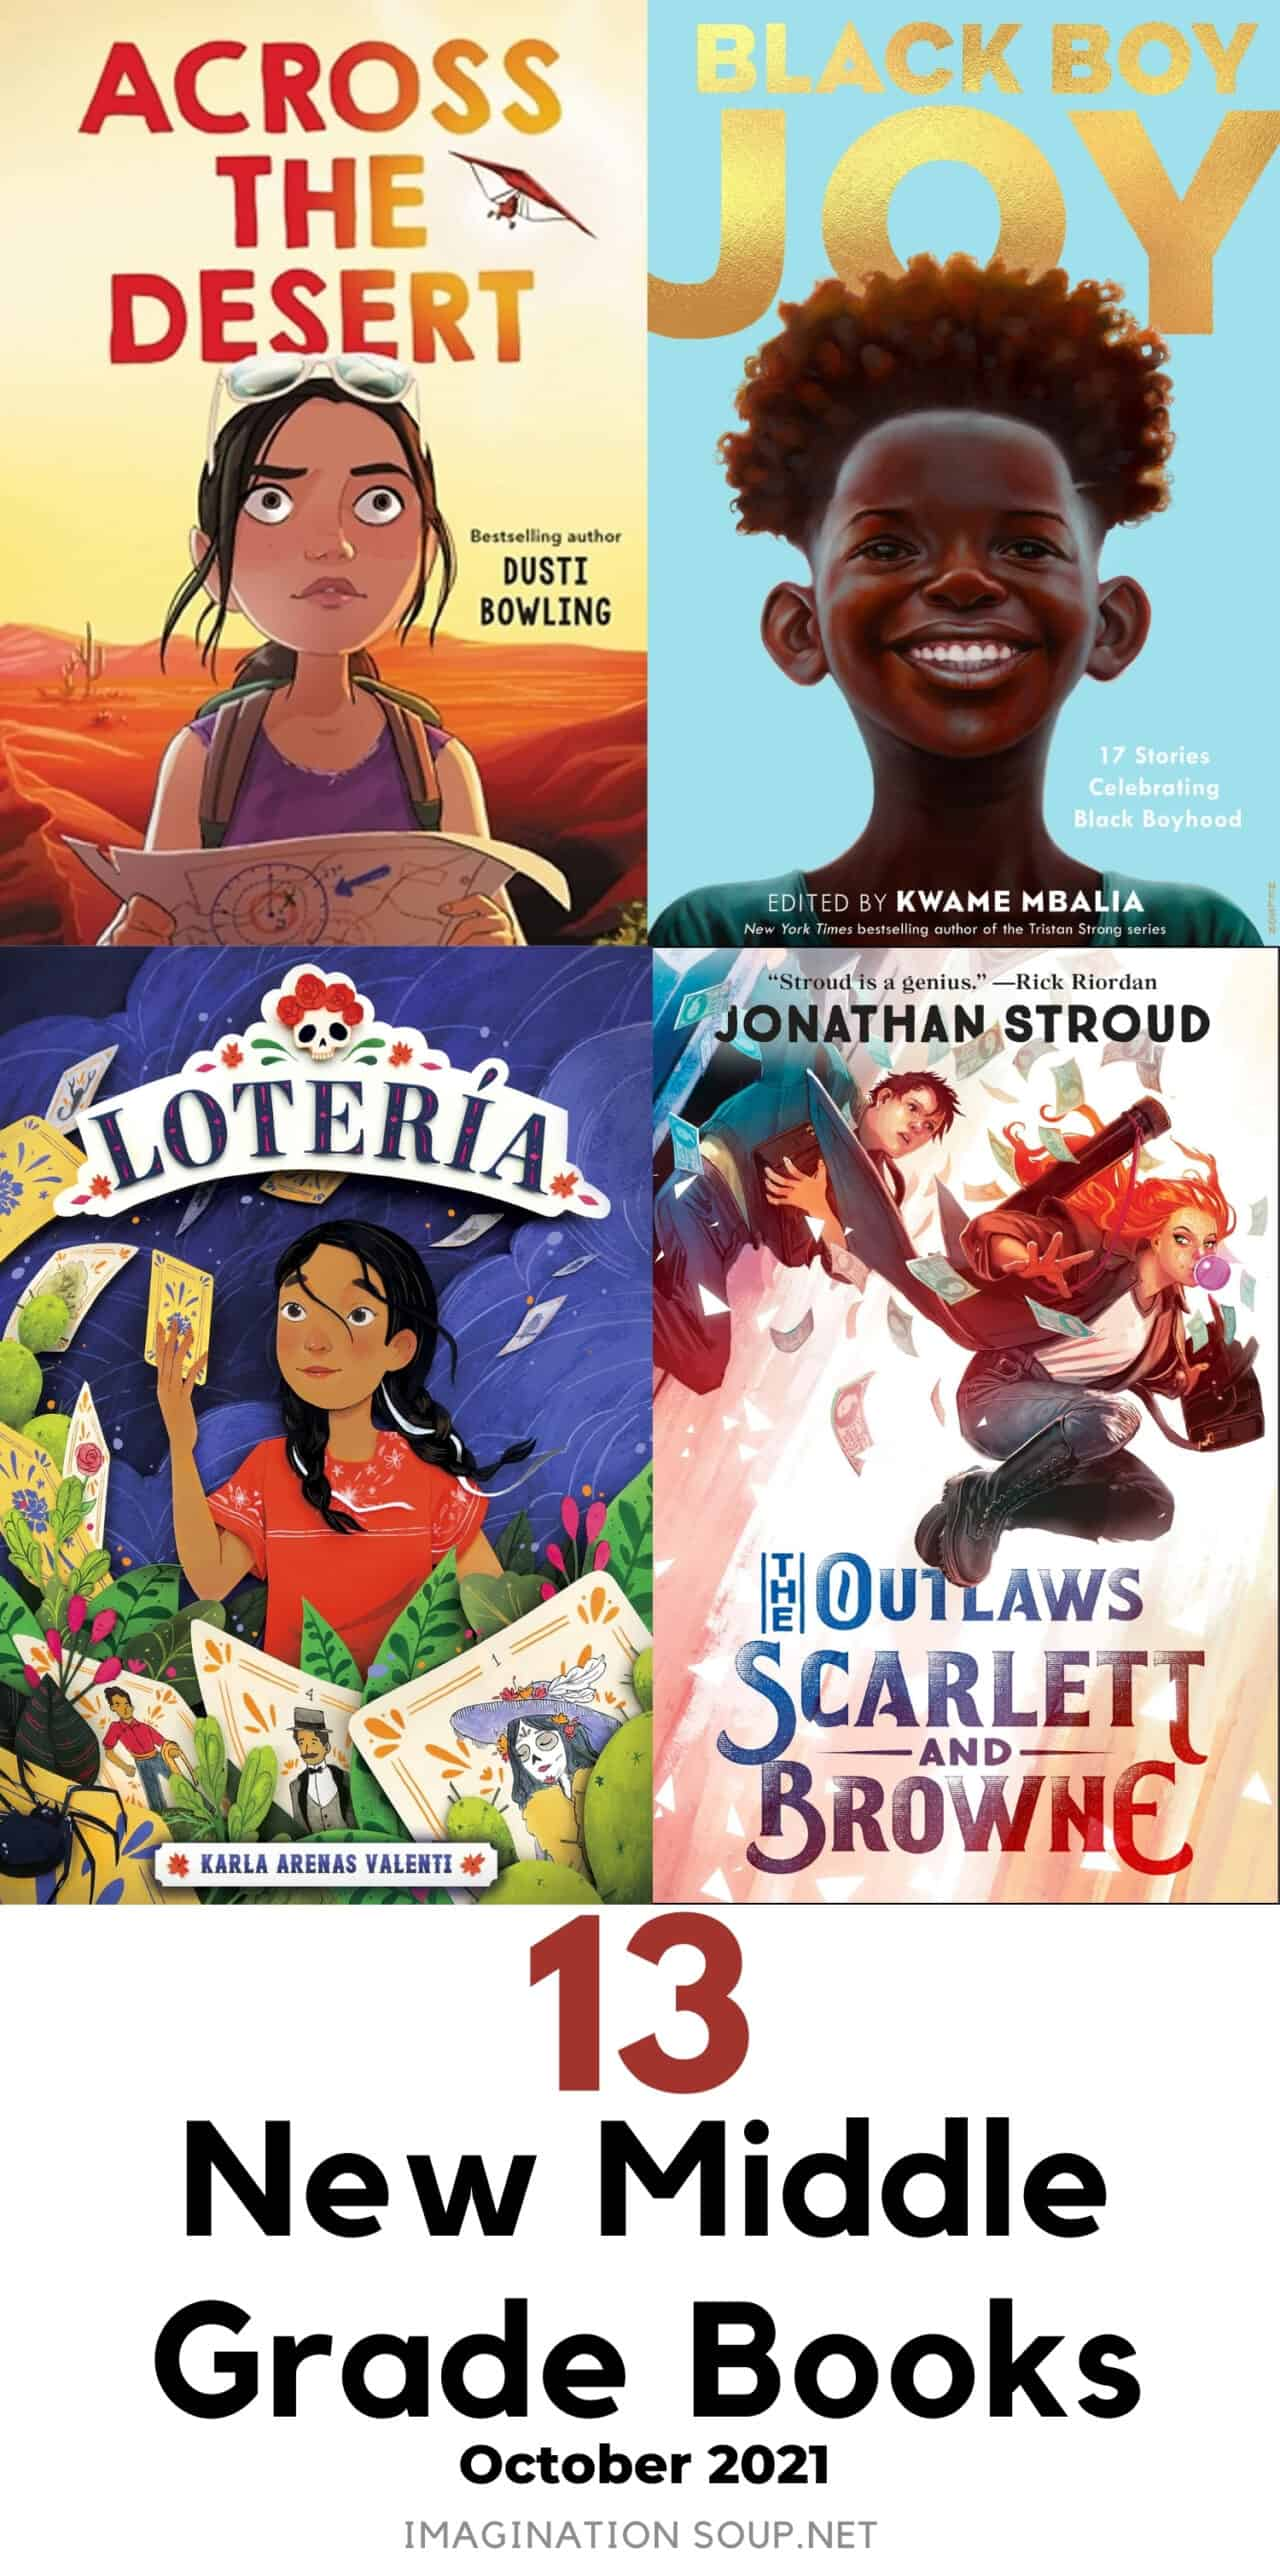 13 new middle grade books, October 2021